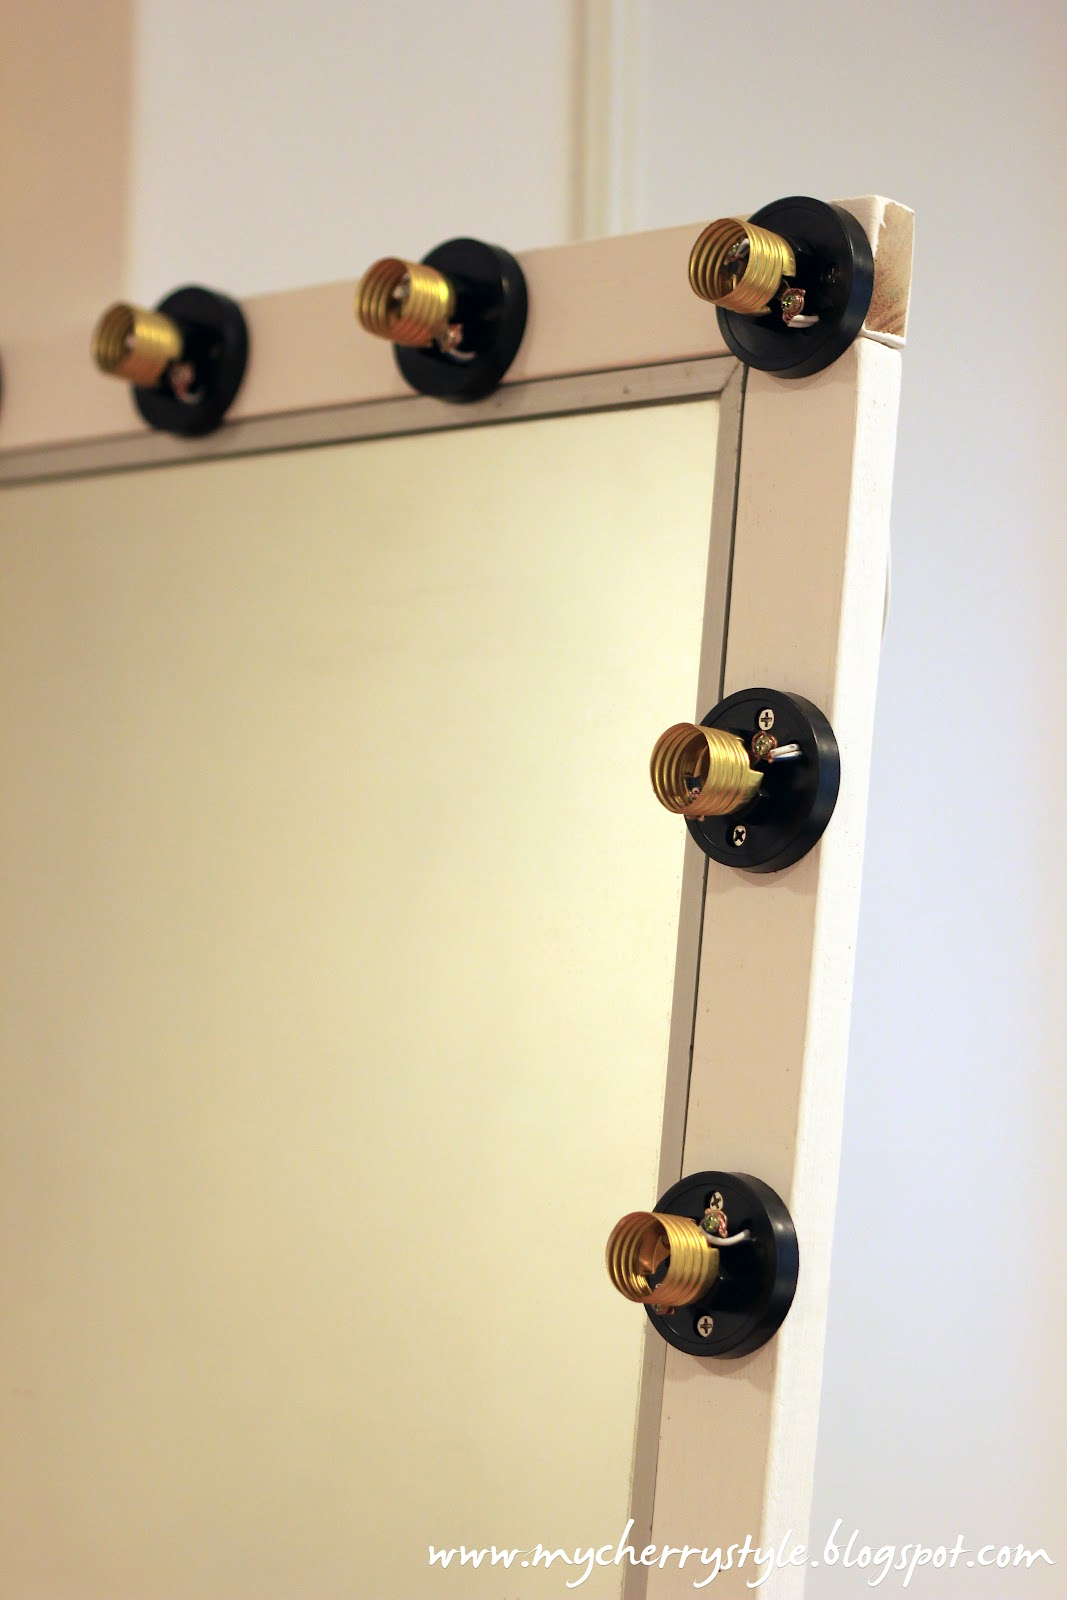 Vanity Mirror Lights Diy : DIY Hollywood-style mirror with lights! Tutorial from scratch. for real.